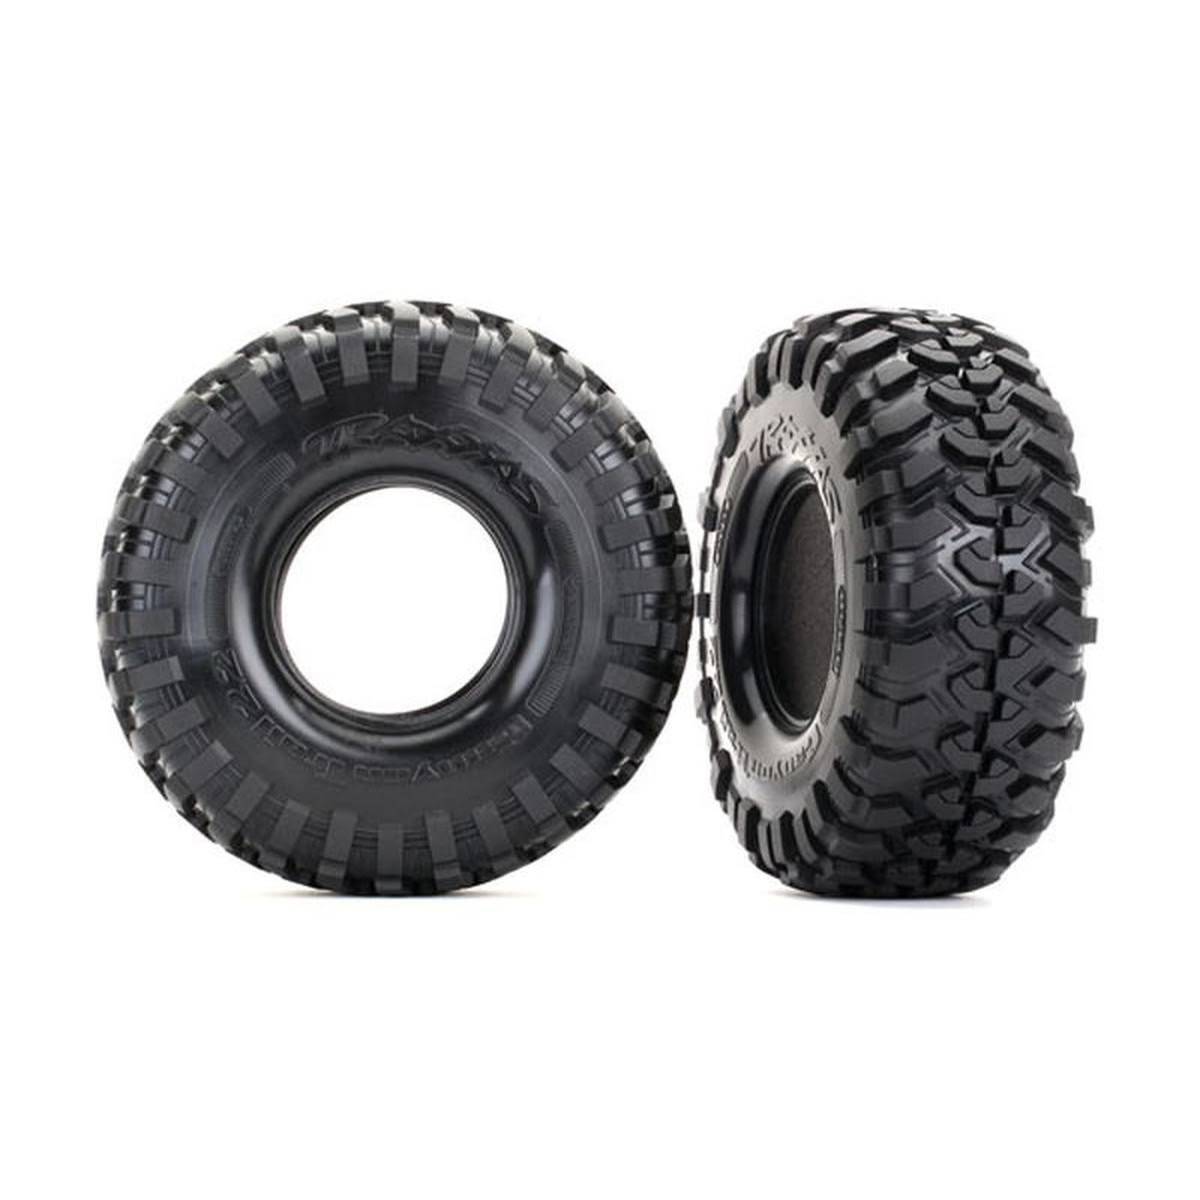 Traxxas 8170 - Tires, Canyon Trail 2.2/ Foam Inserts (2)